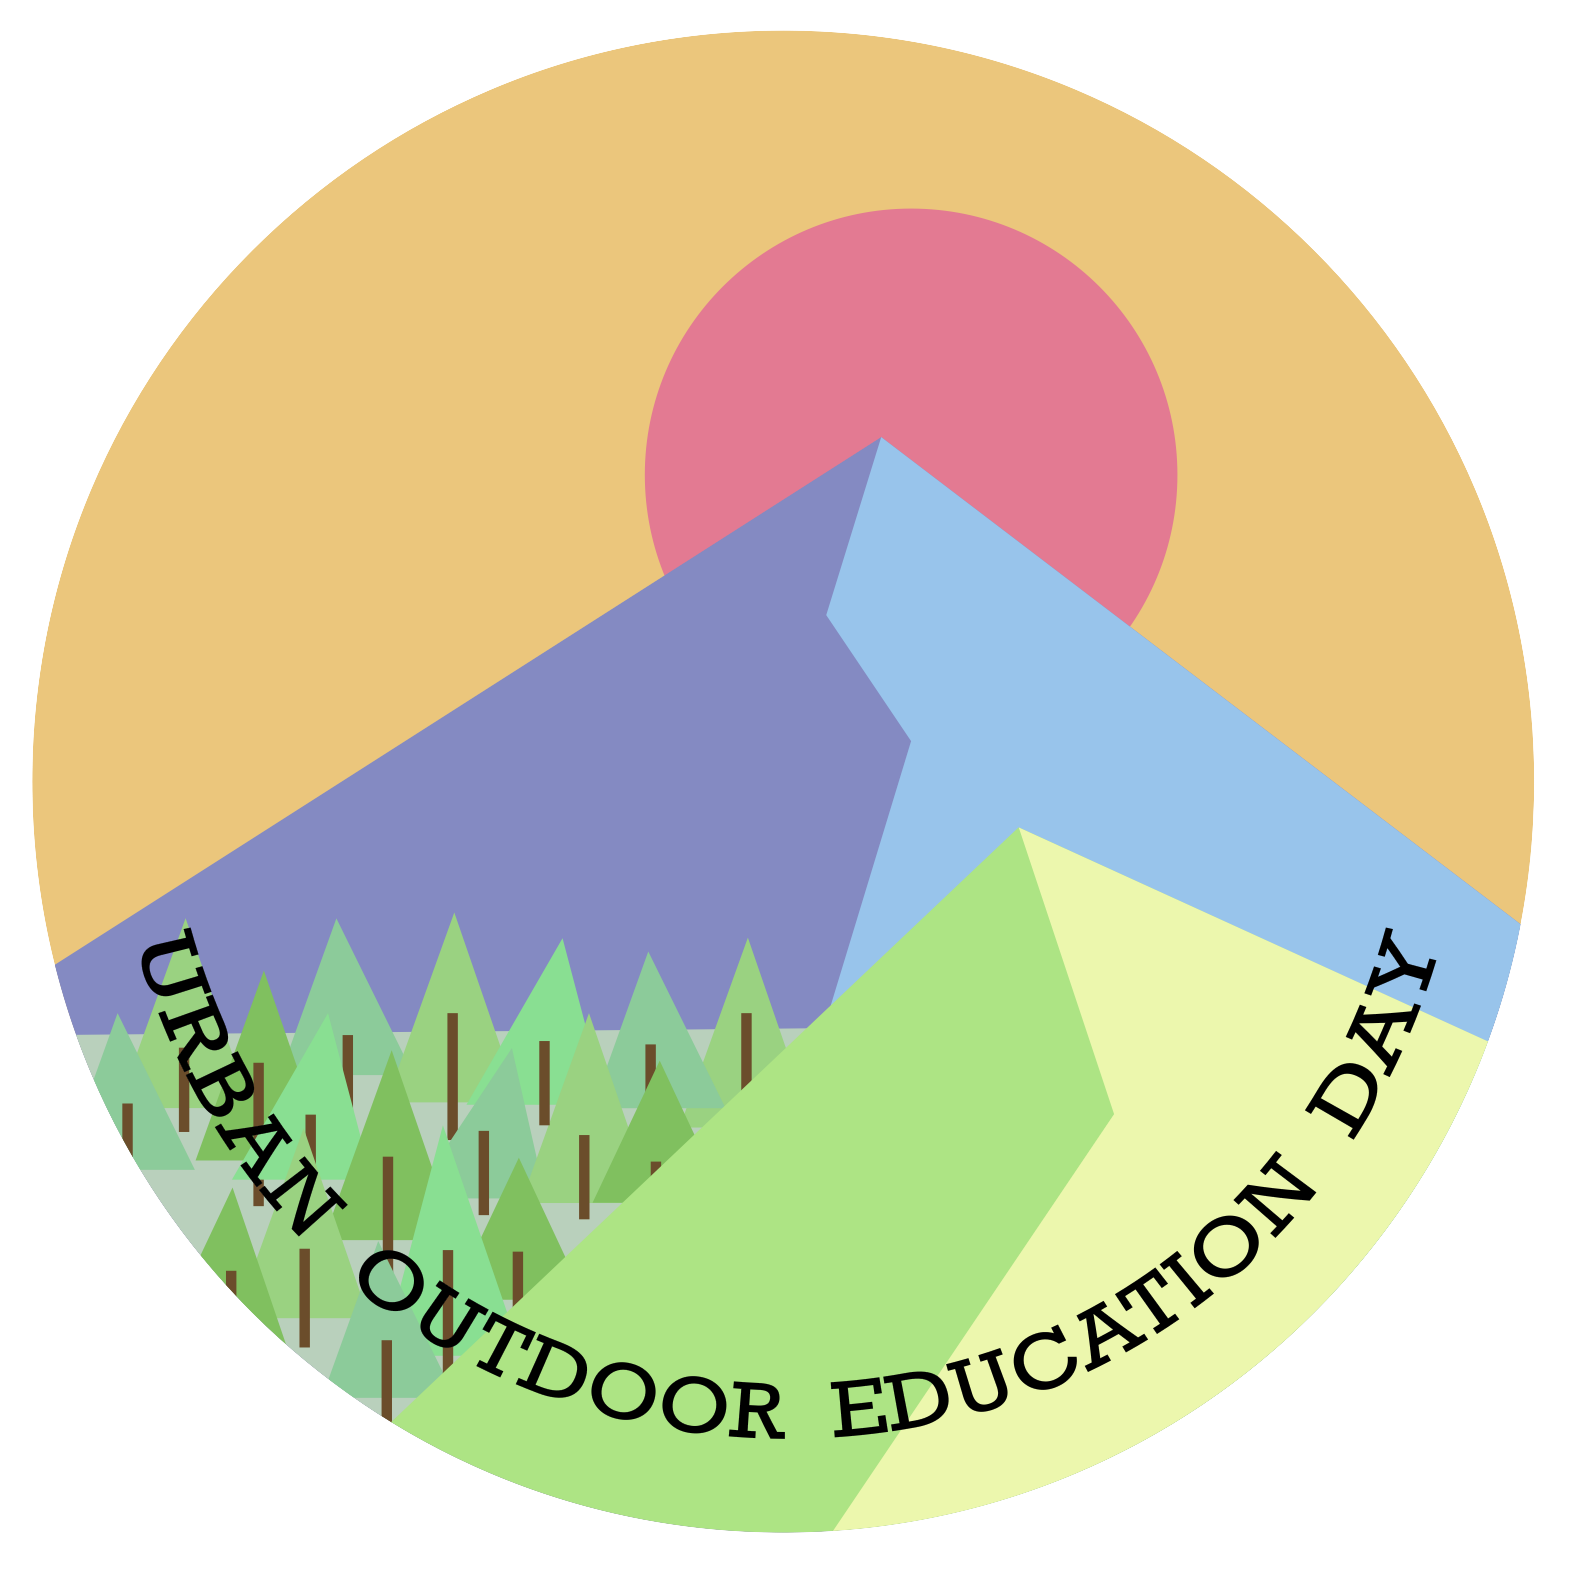 Urban Outdoor Education Day